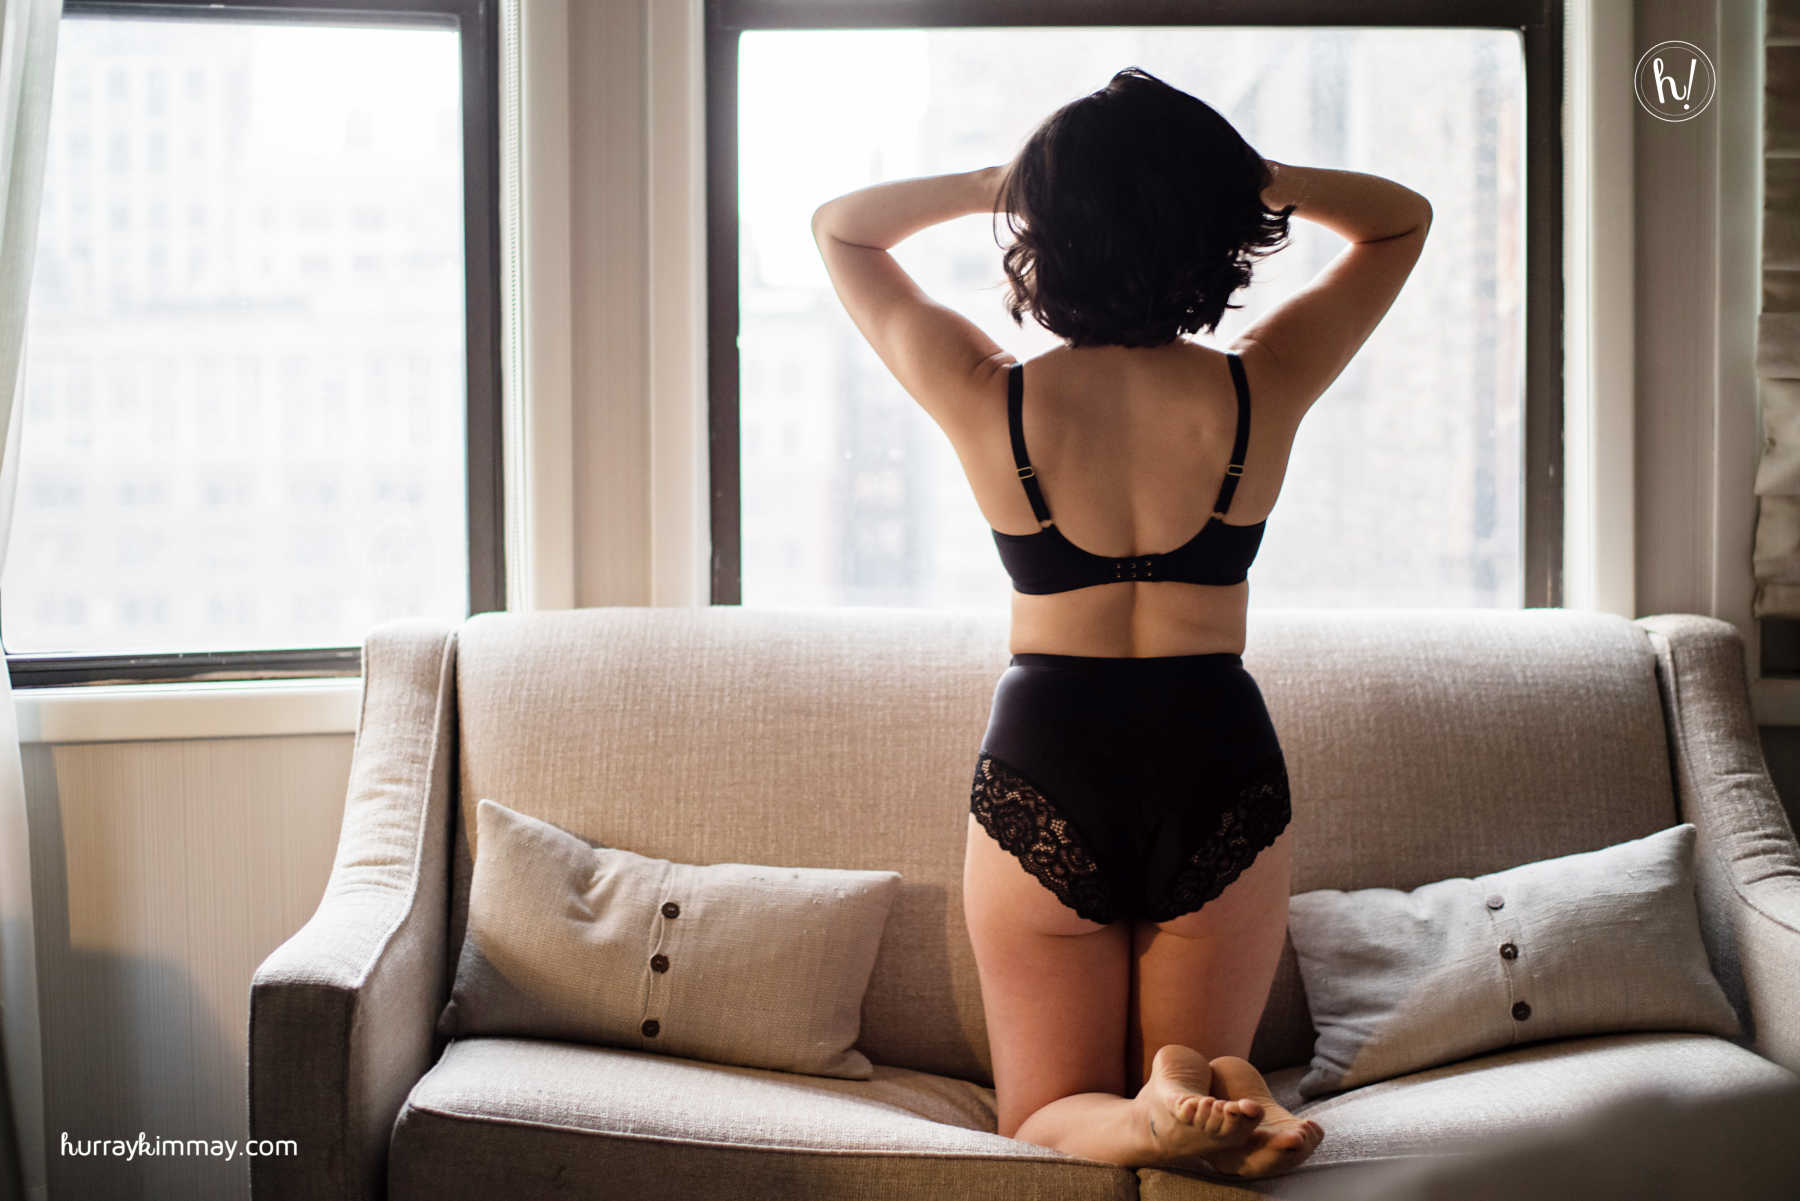 You deserve a self care ritual. Why not do it with your everyday bra routine? Kimmay shows you how in the blog.